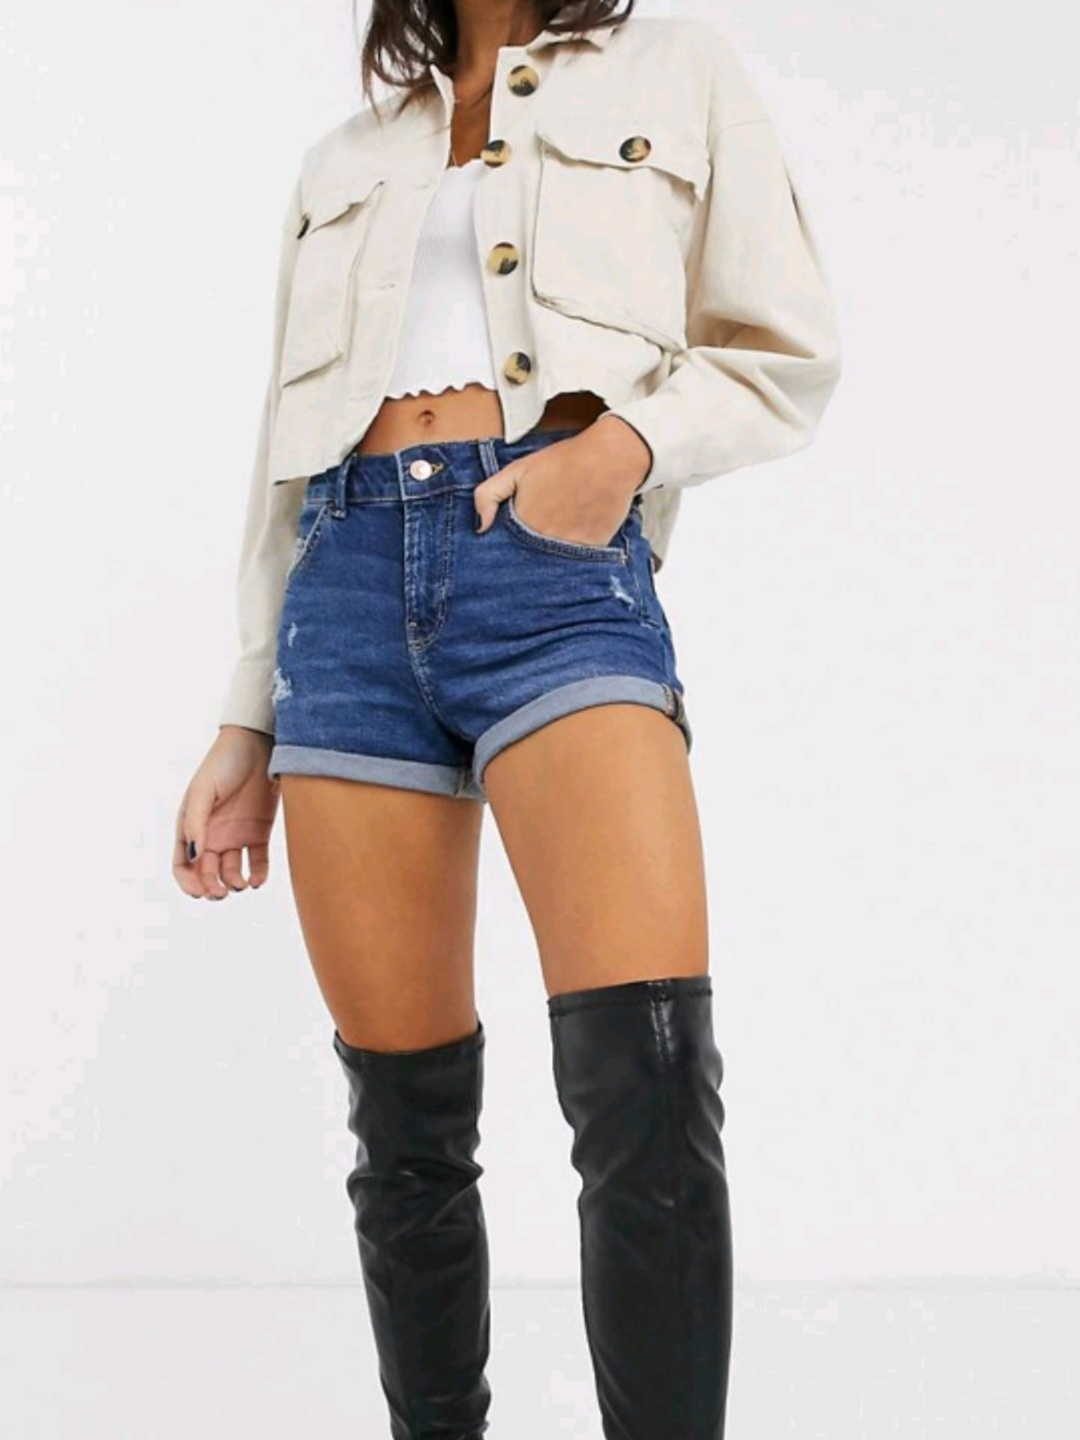 Damen shorts - BERSHKA photo 3